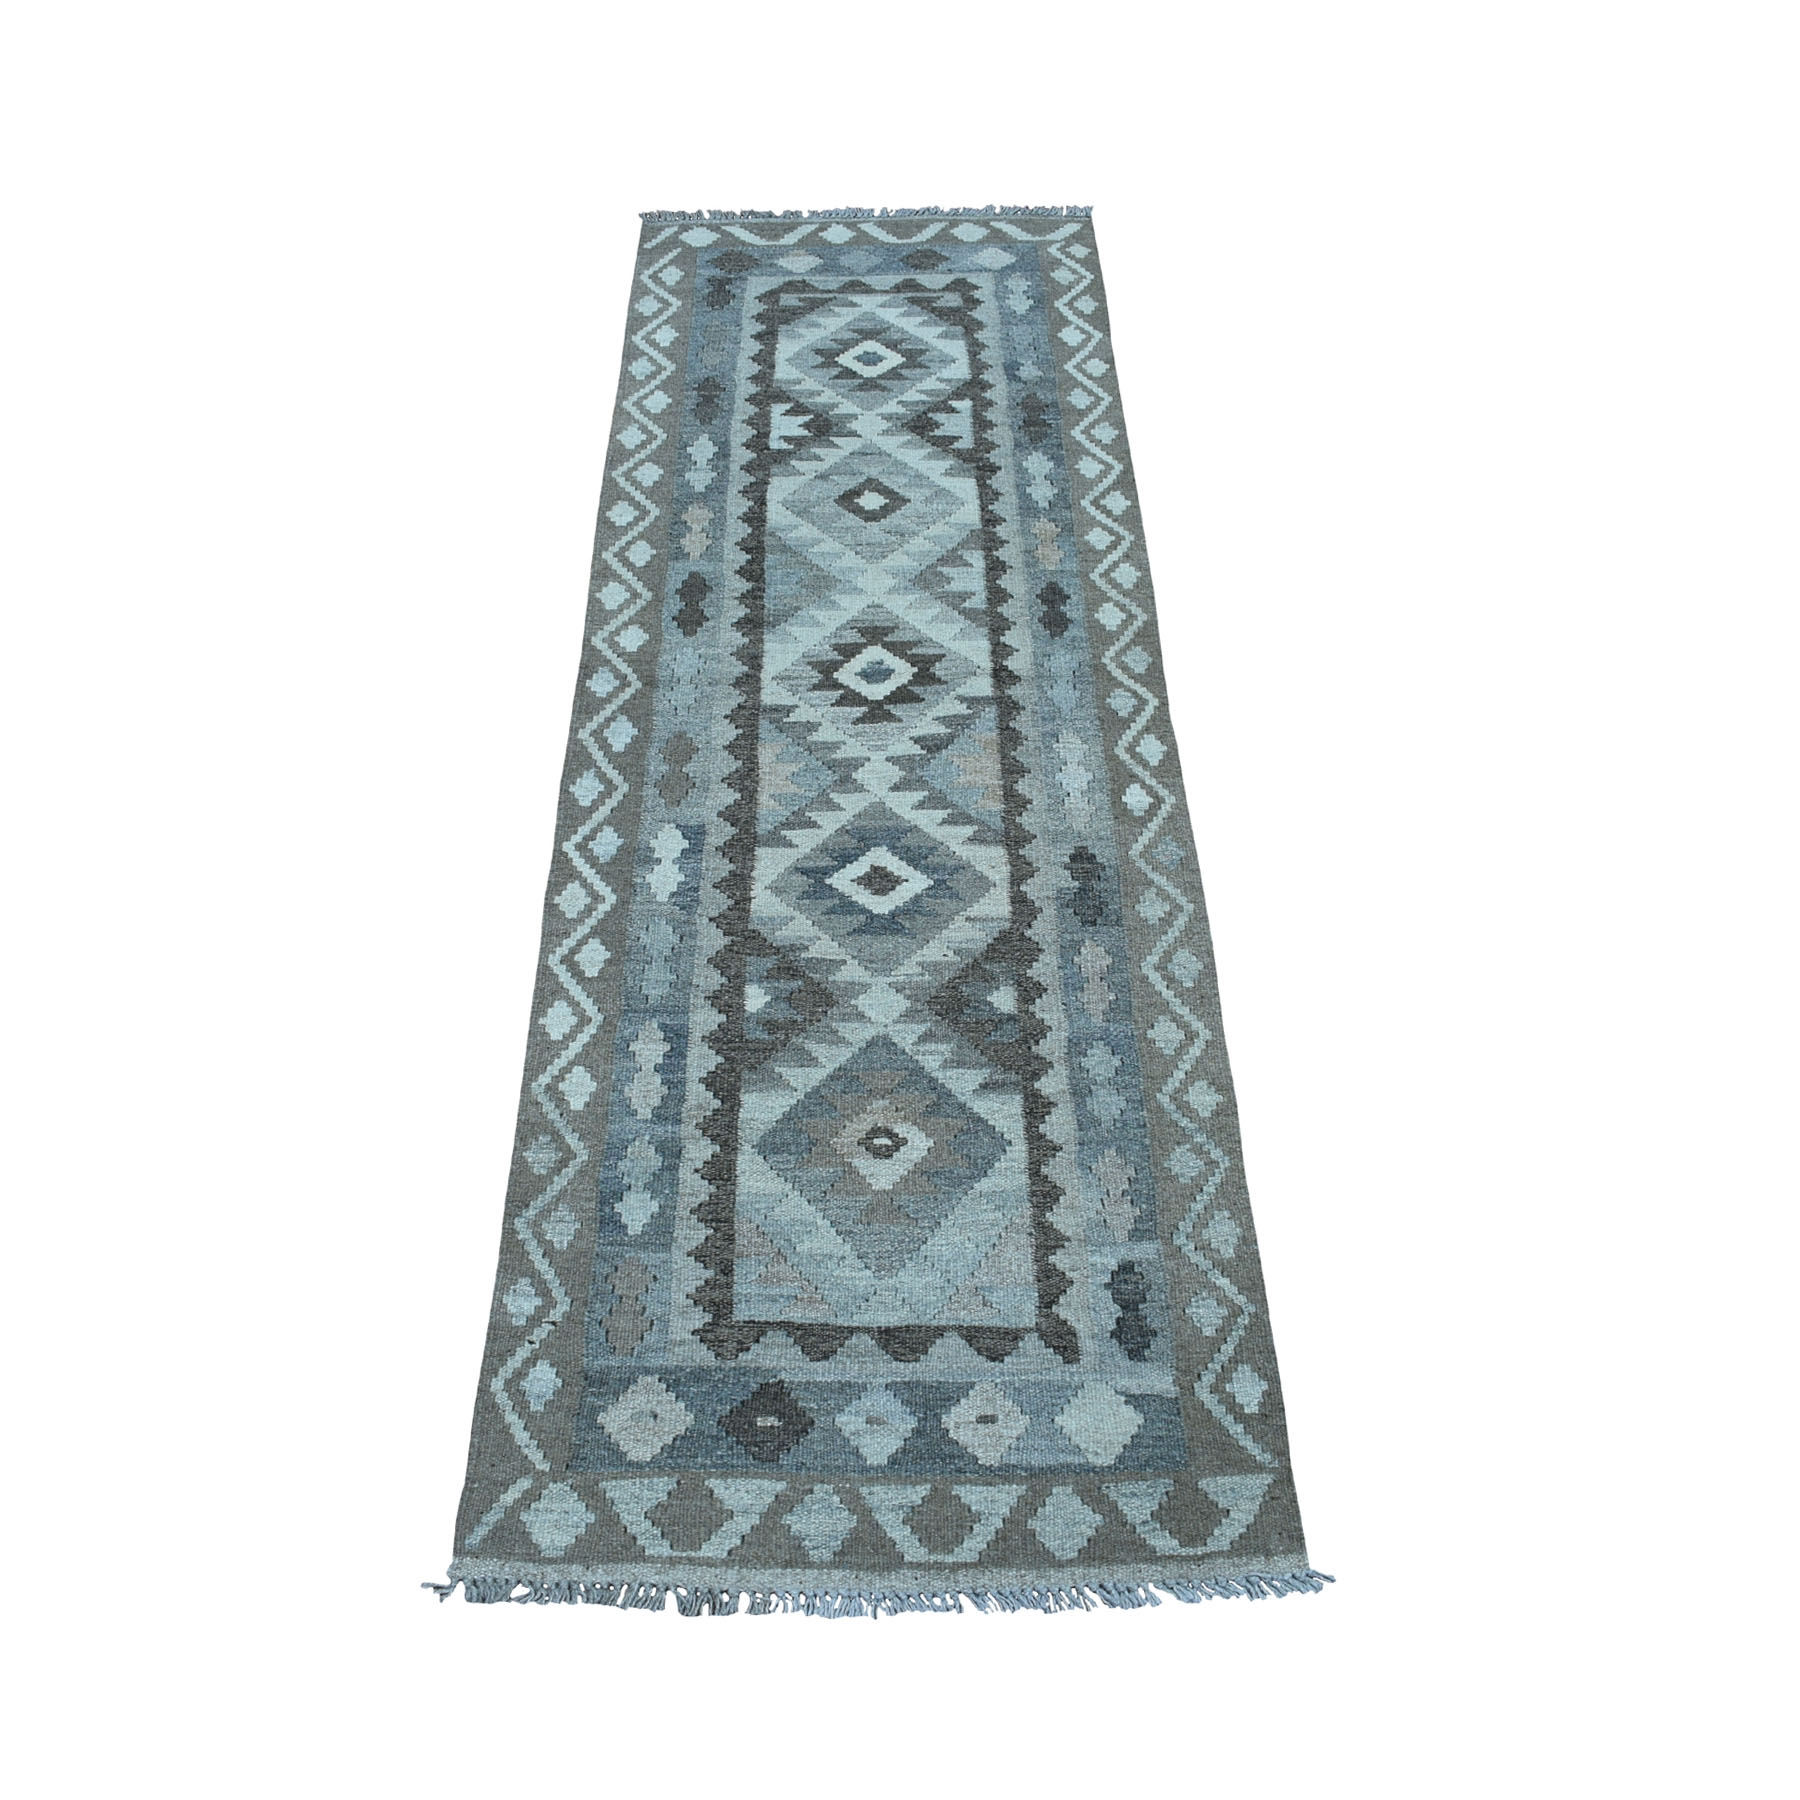 """2'1""""X6'2"""" Undyed Natural Wool Afghan Kilim Reversible Hand Woven Runner Oriental Rug moaec068"""